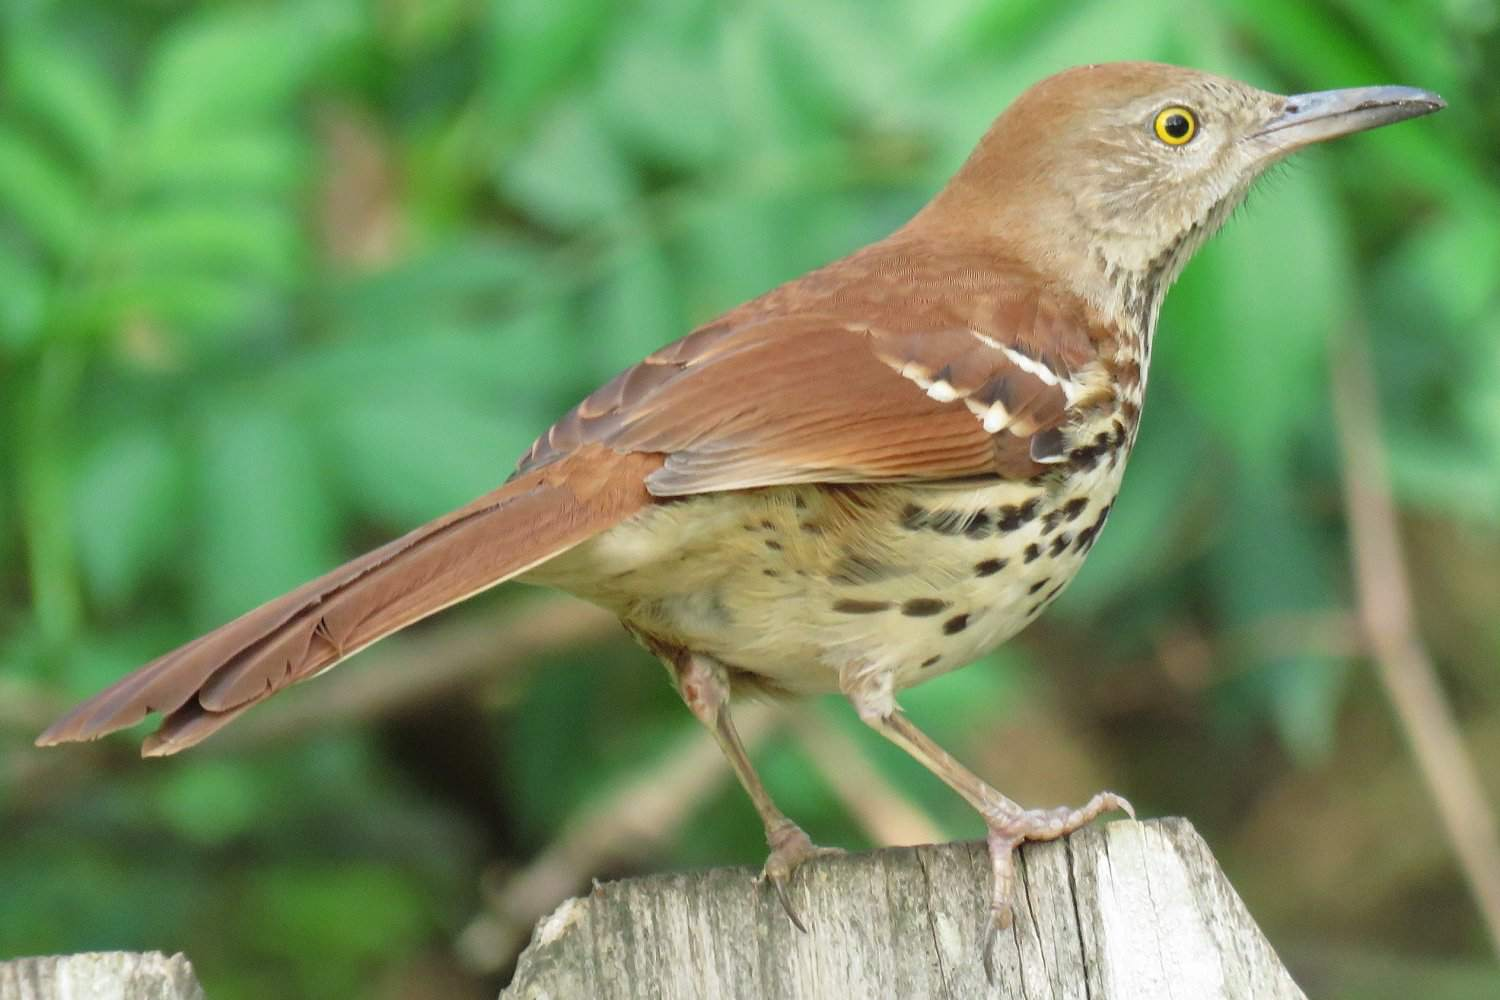 Brown Thrasher, el ave estatal de Georgia, de pie sobre una cerca de madera